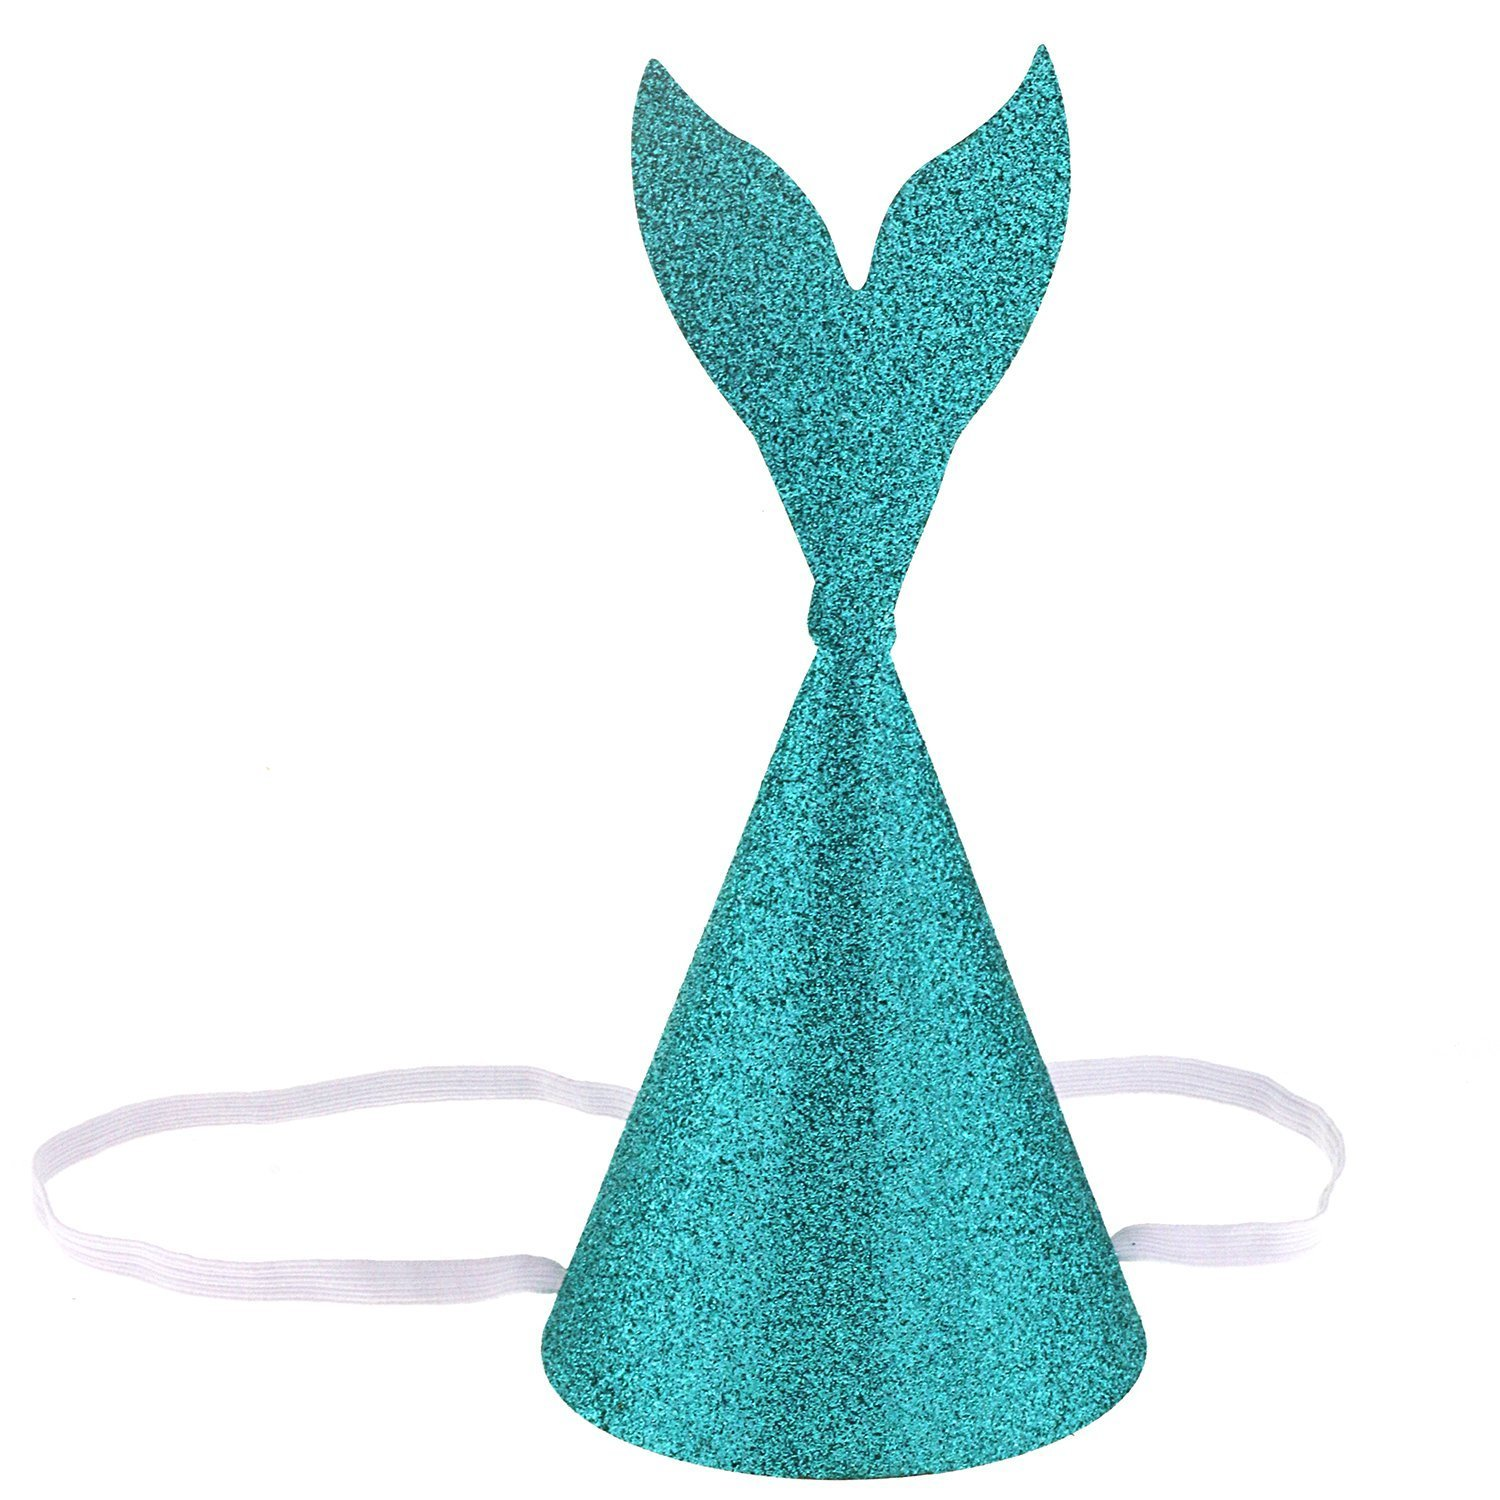 NUOFENG 8PCS Glitter Blue Mermaid Tail Party Hats Birthday Party Decorations for Children and Adults